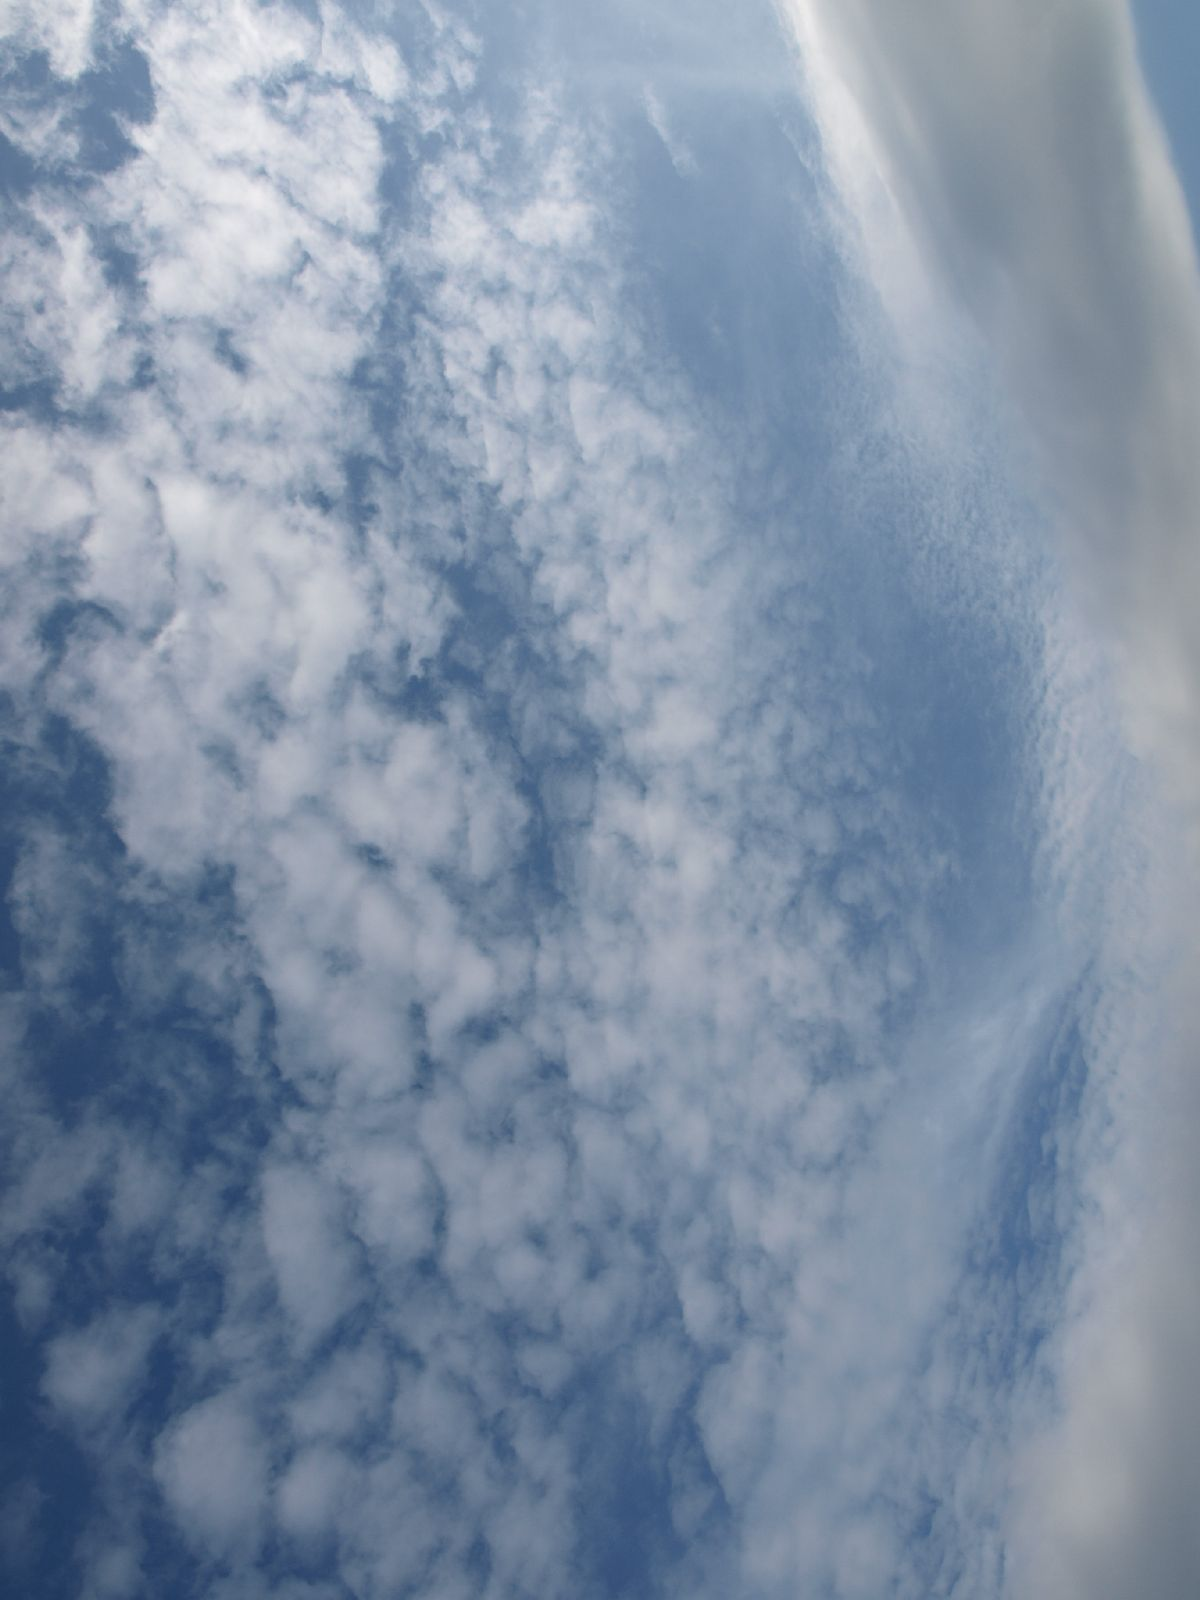 Sky_Clouds_Photo_Texture_A_P4201558